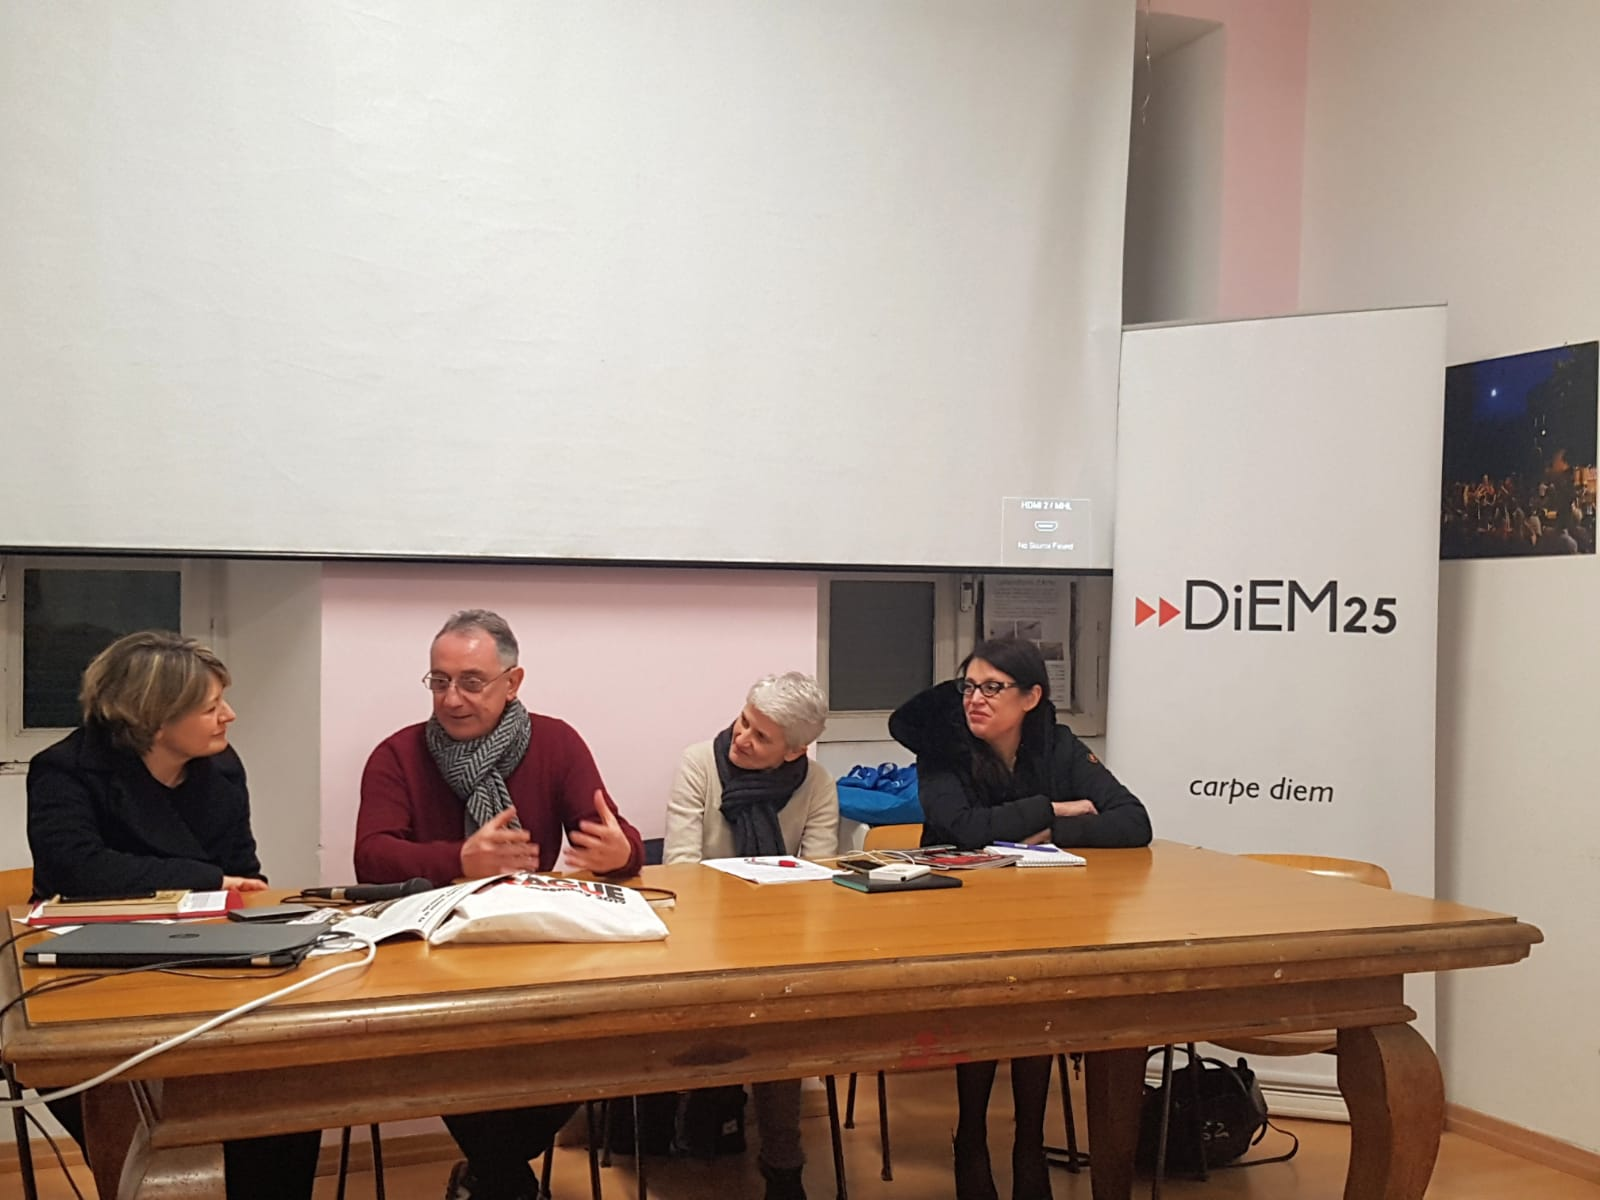 Celebrating DiEM25's fourth anniversary in Rome